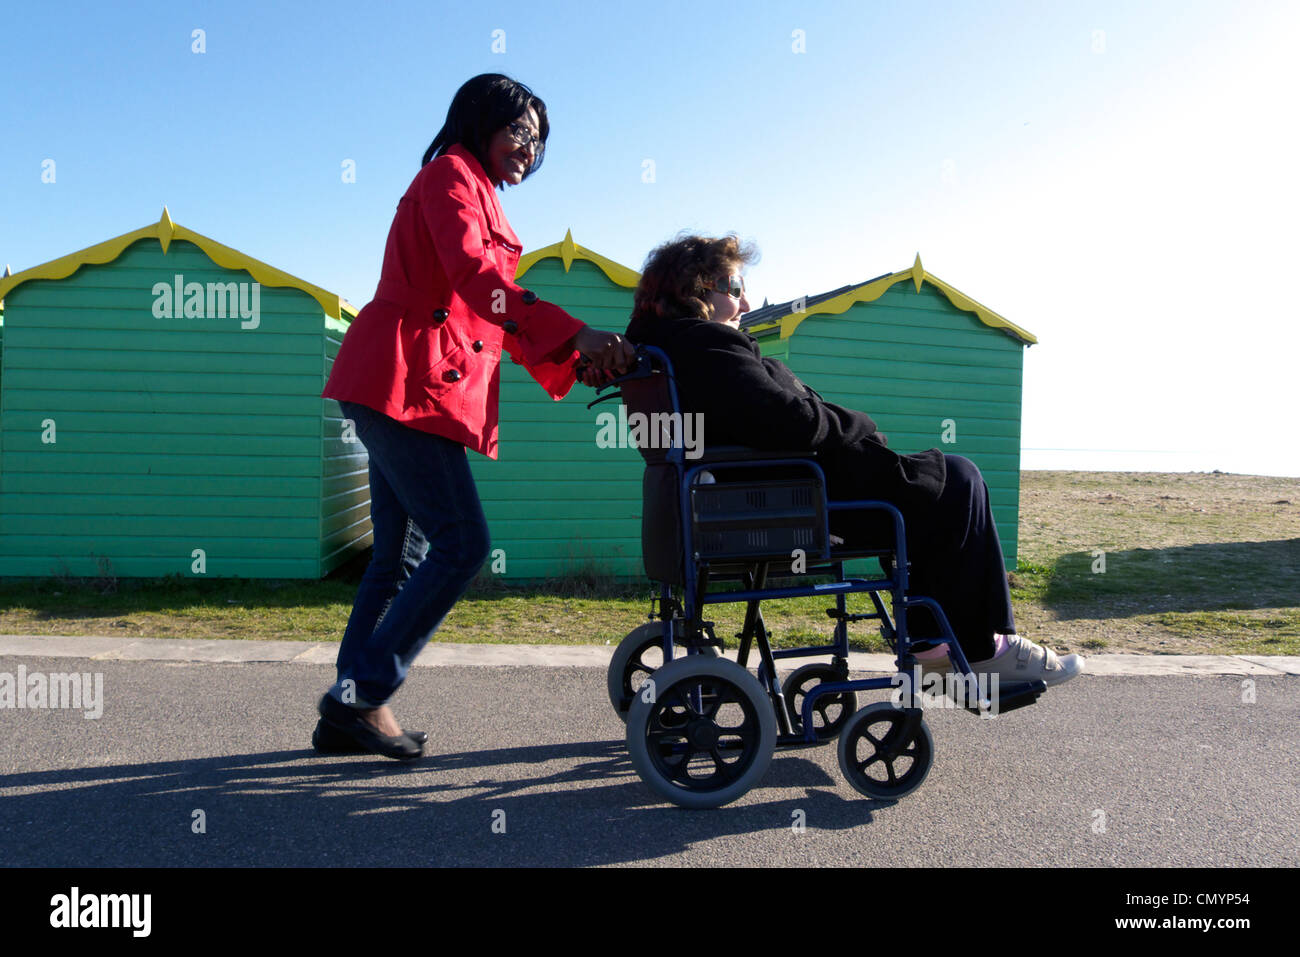 united kingdom west sussex littlehampton an elderly woman being wheeled in a wheelchair past beach huts - Stock Image